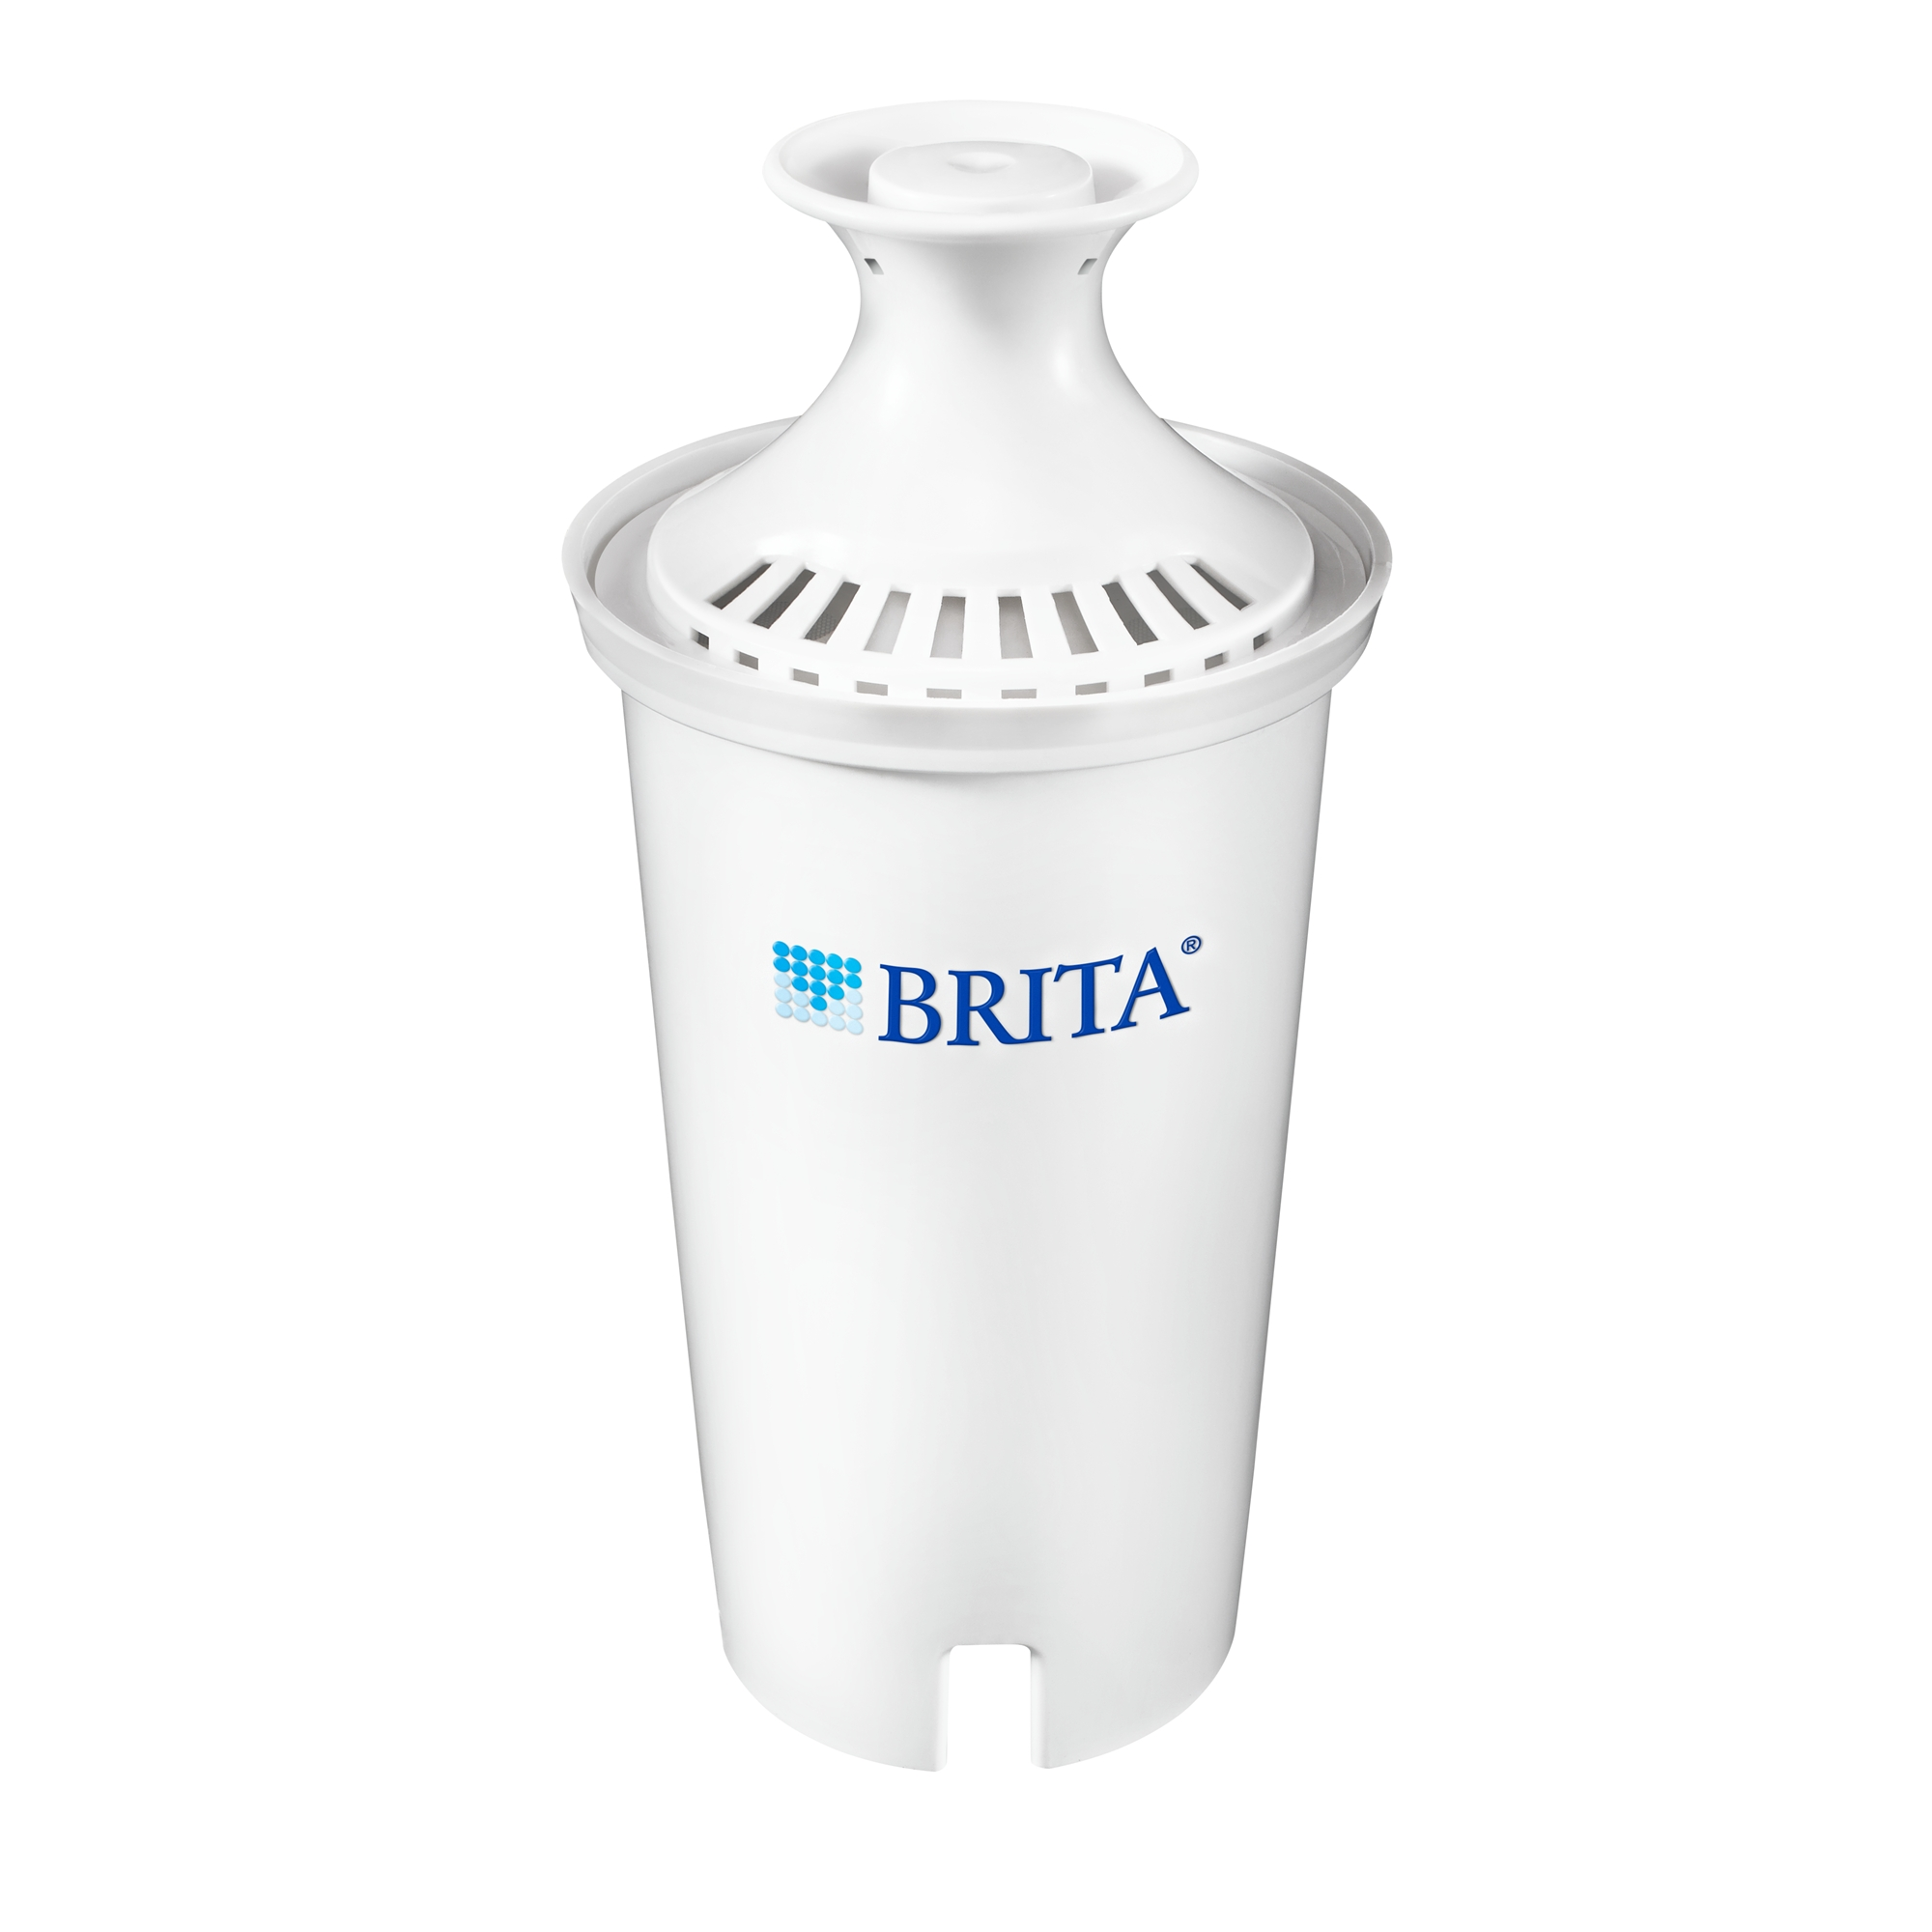 brita replacement water filter for pitchers 1 ct